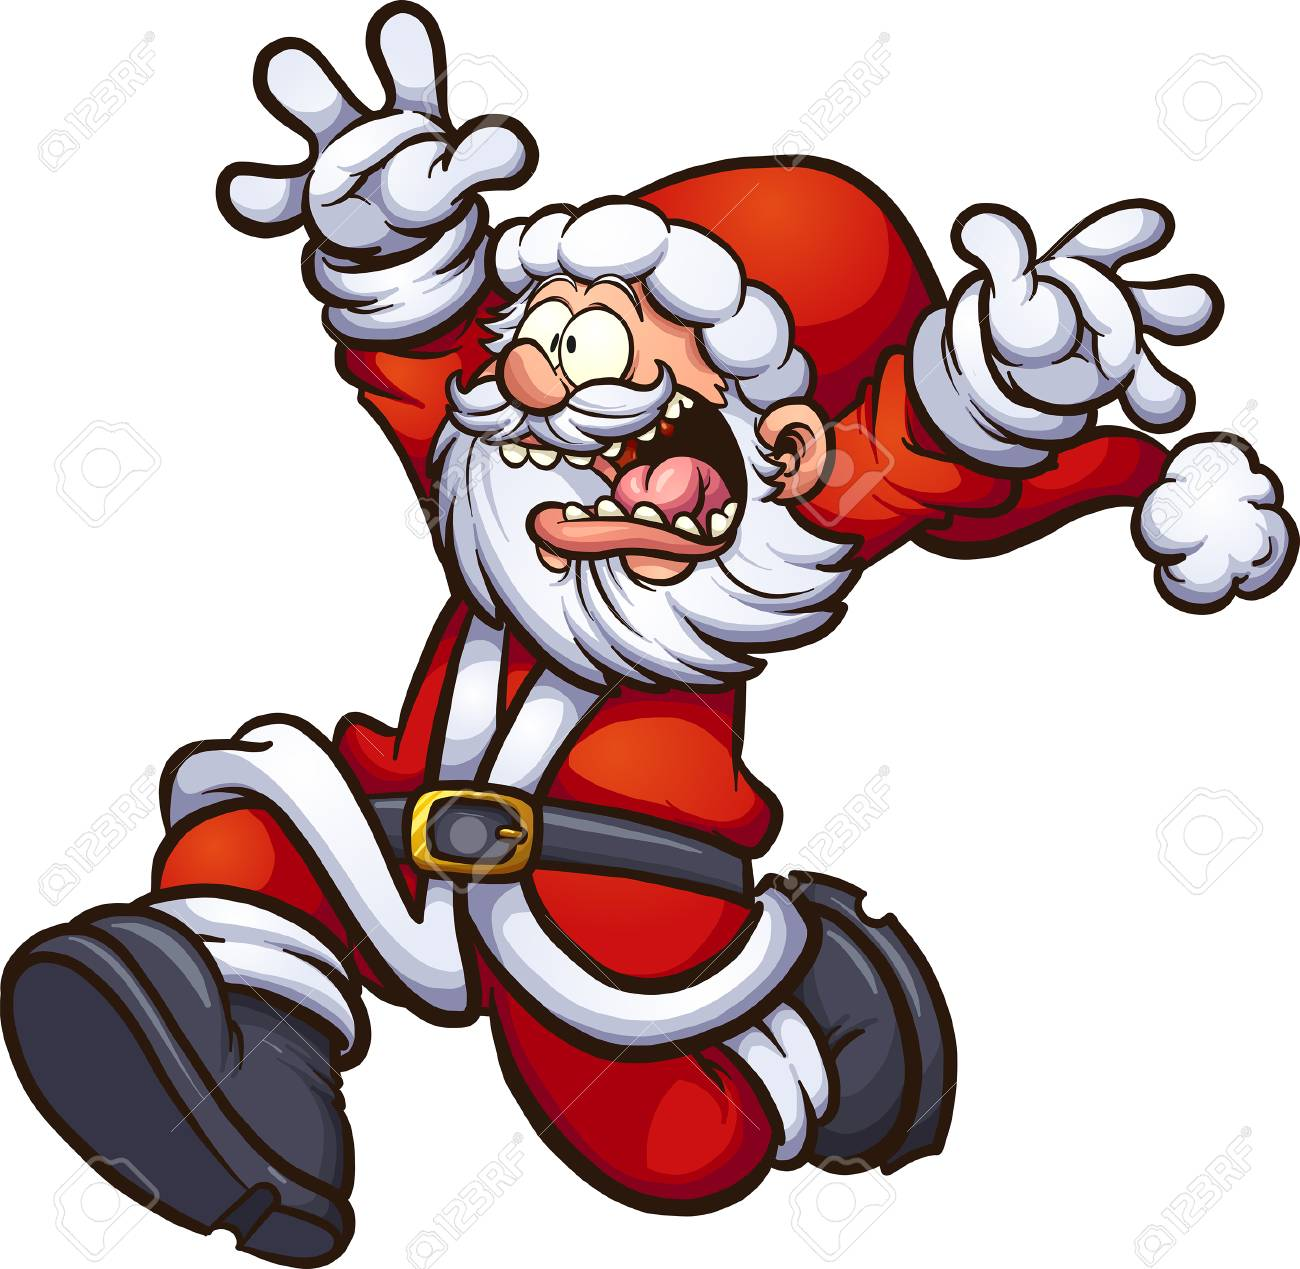 Santa Claus running scared with arms up. Vector clip art illustration with simple gradients. All in a single layer. - 88465637